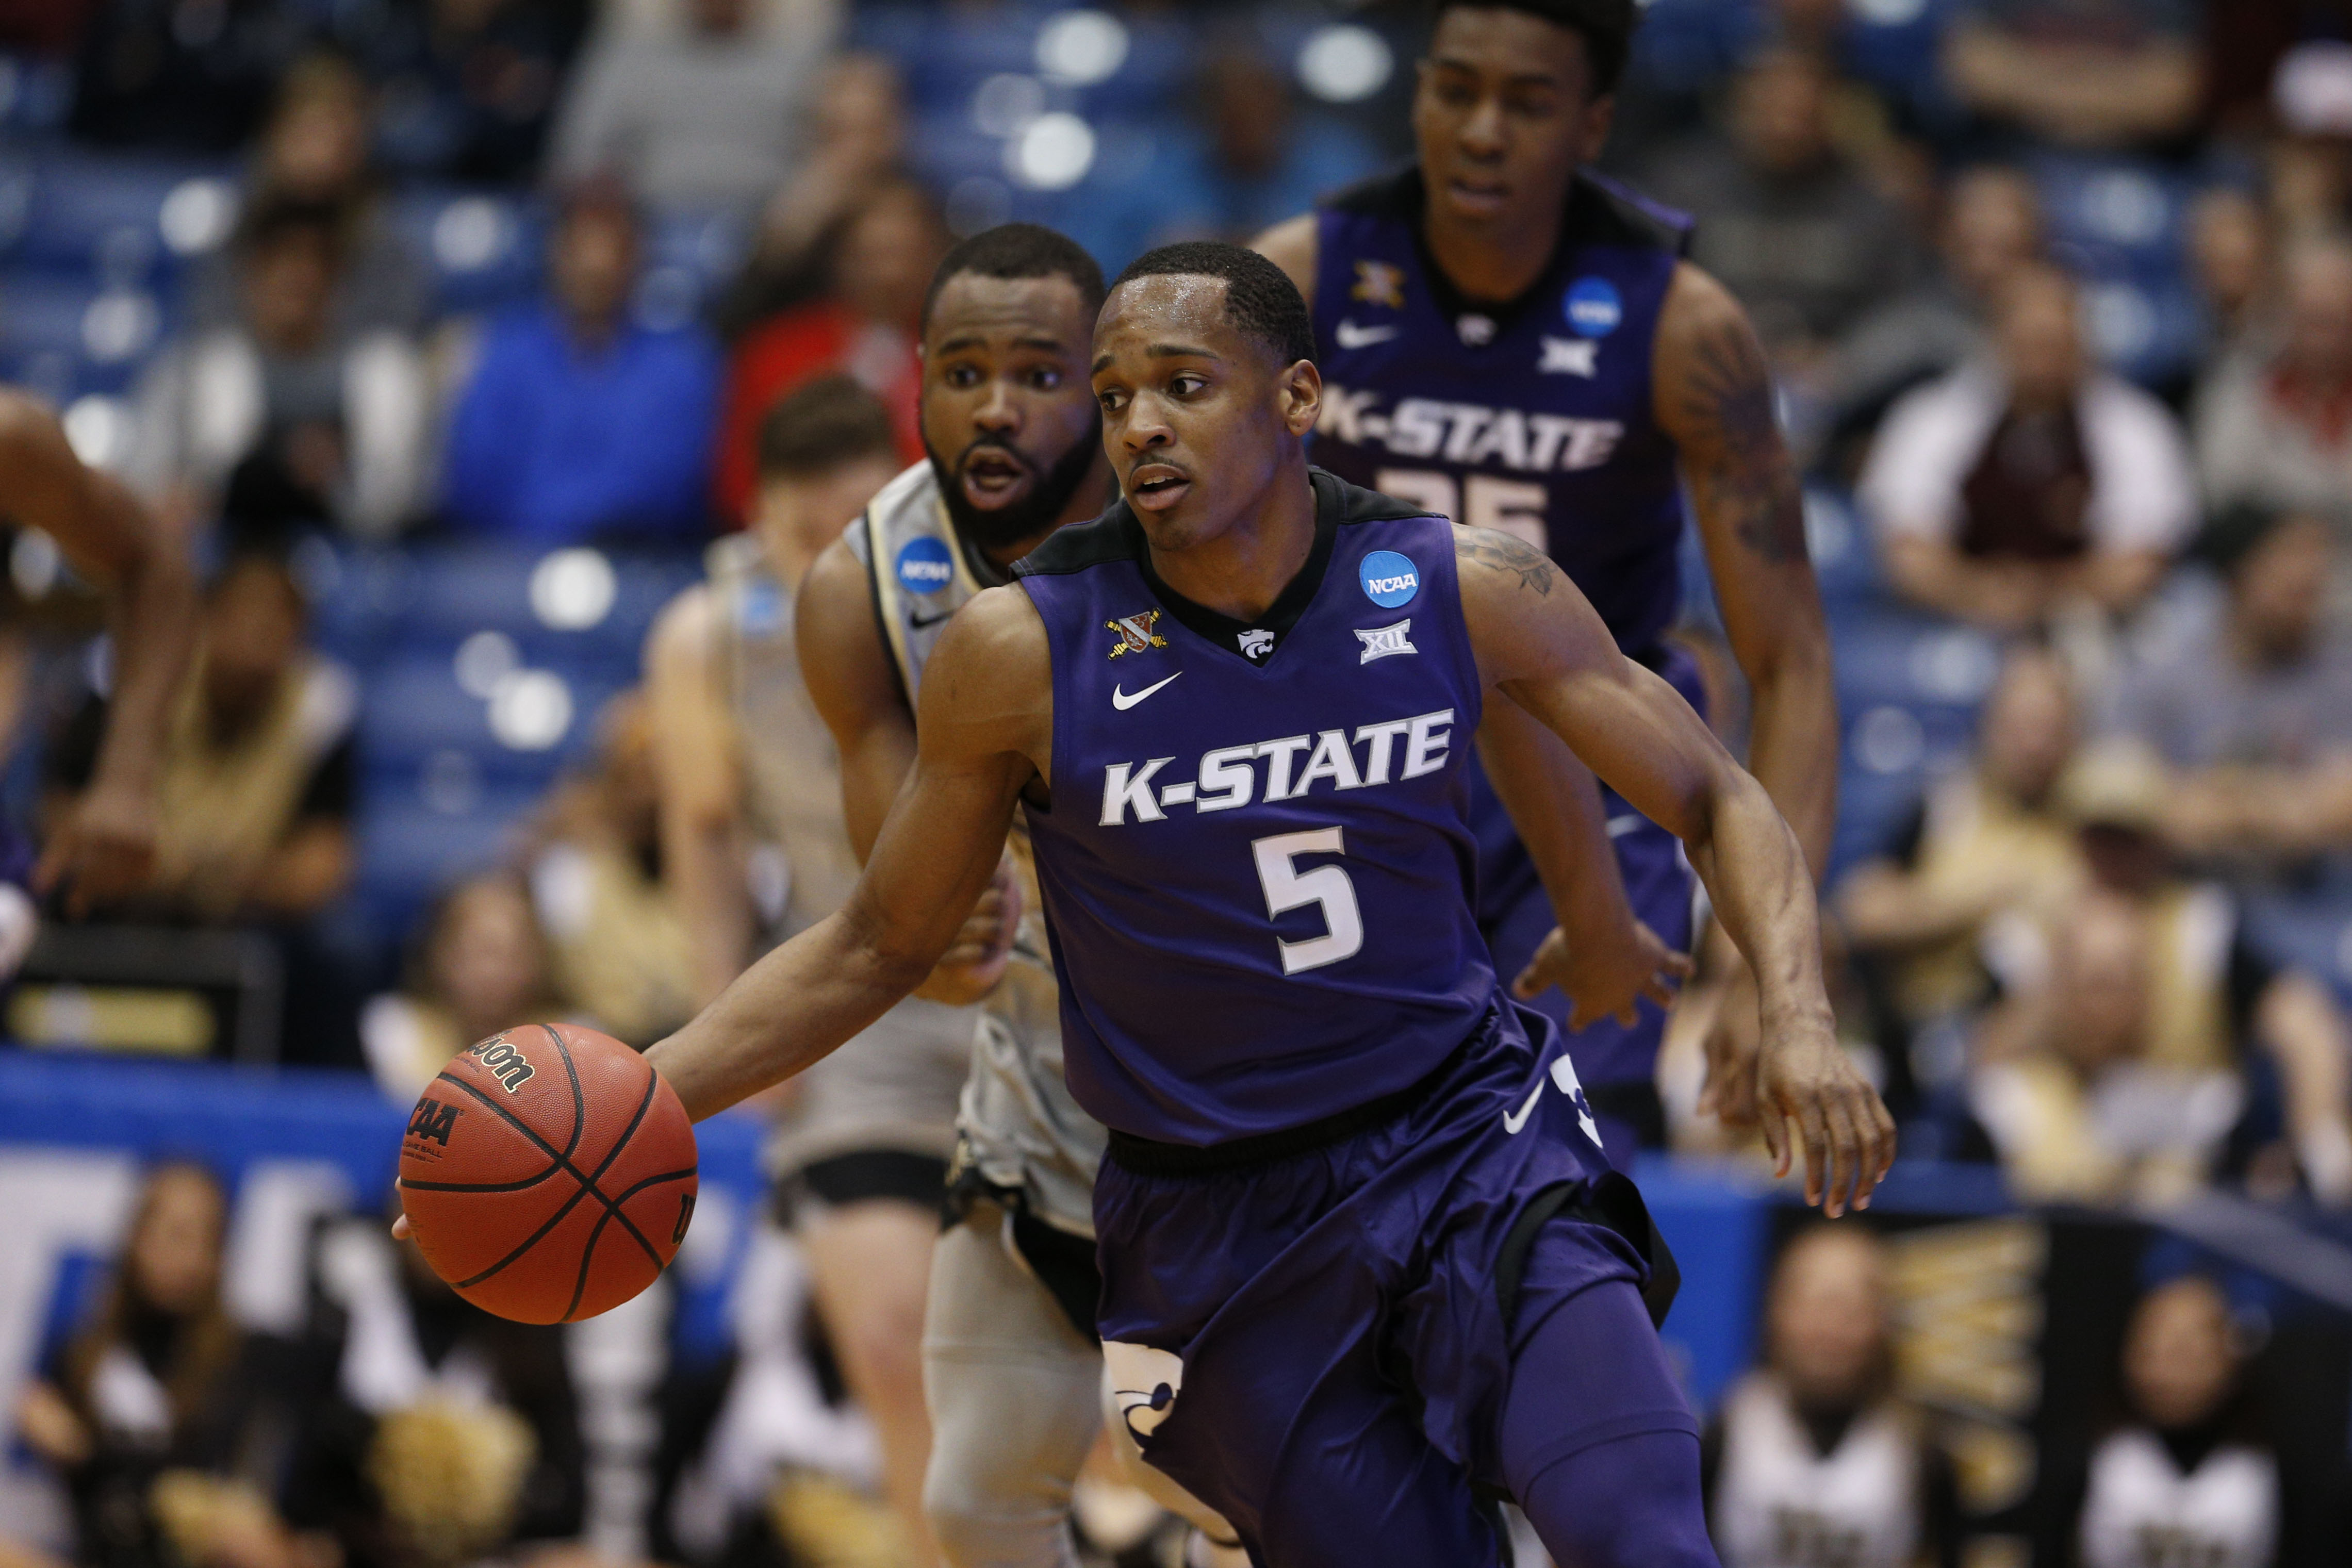 March Madness: Cincinnati advances after defeating Kansas State